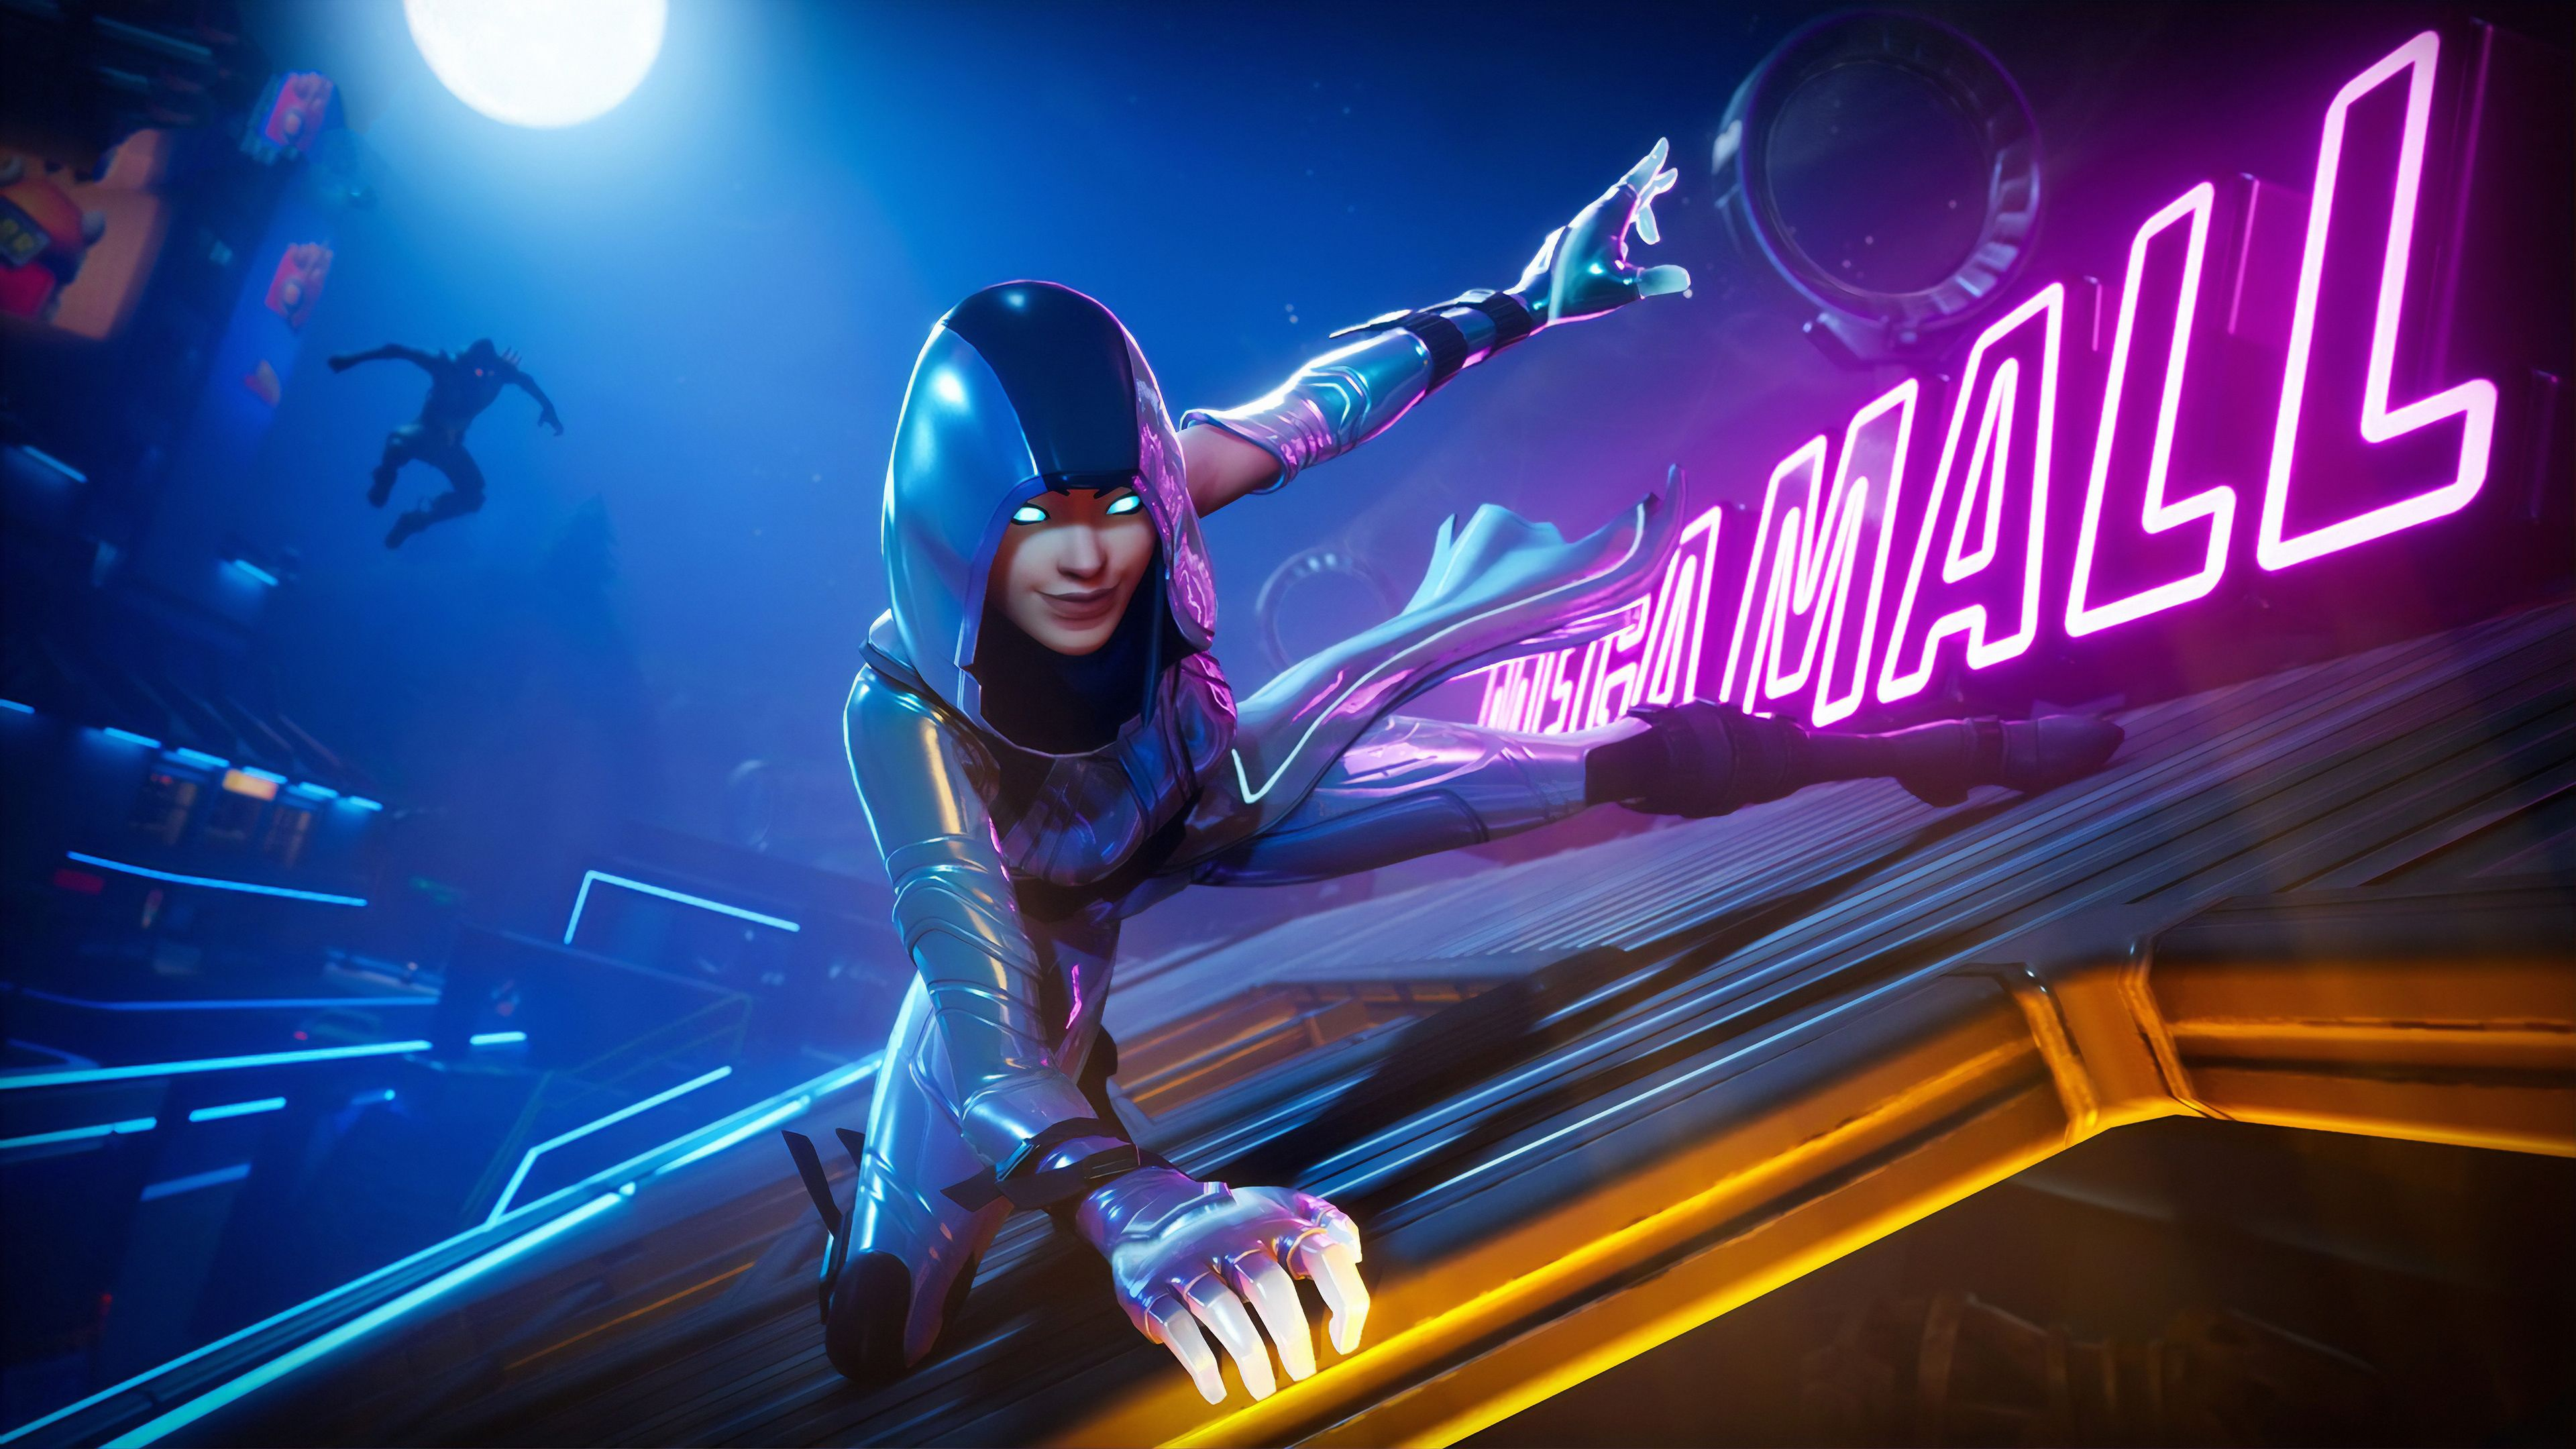 Games Neon Wallpapers Top Free Games Neon Backgrounds Wallpaperaccess